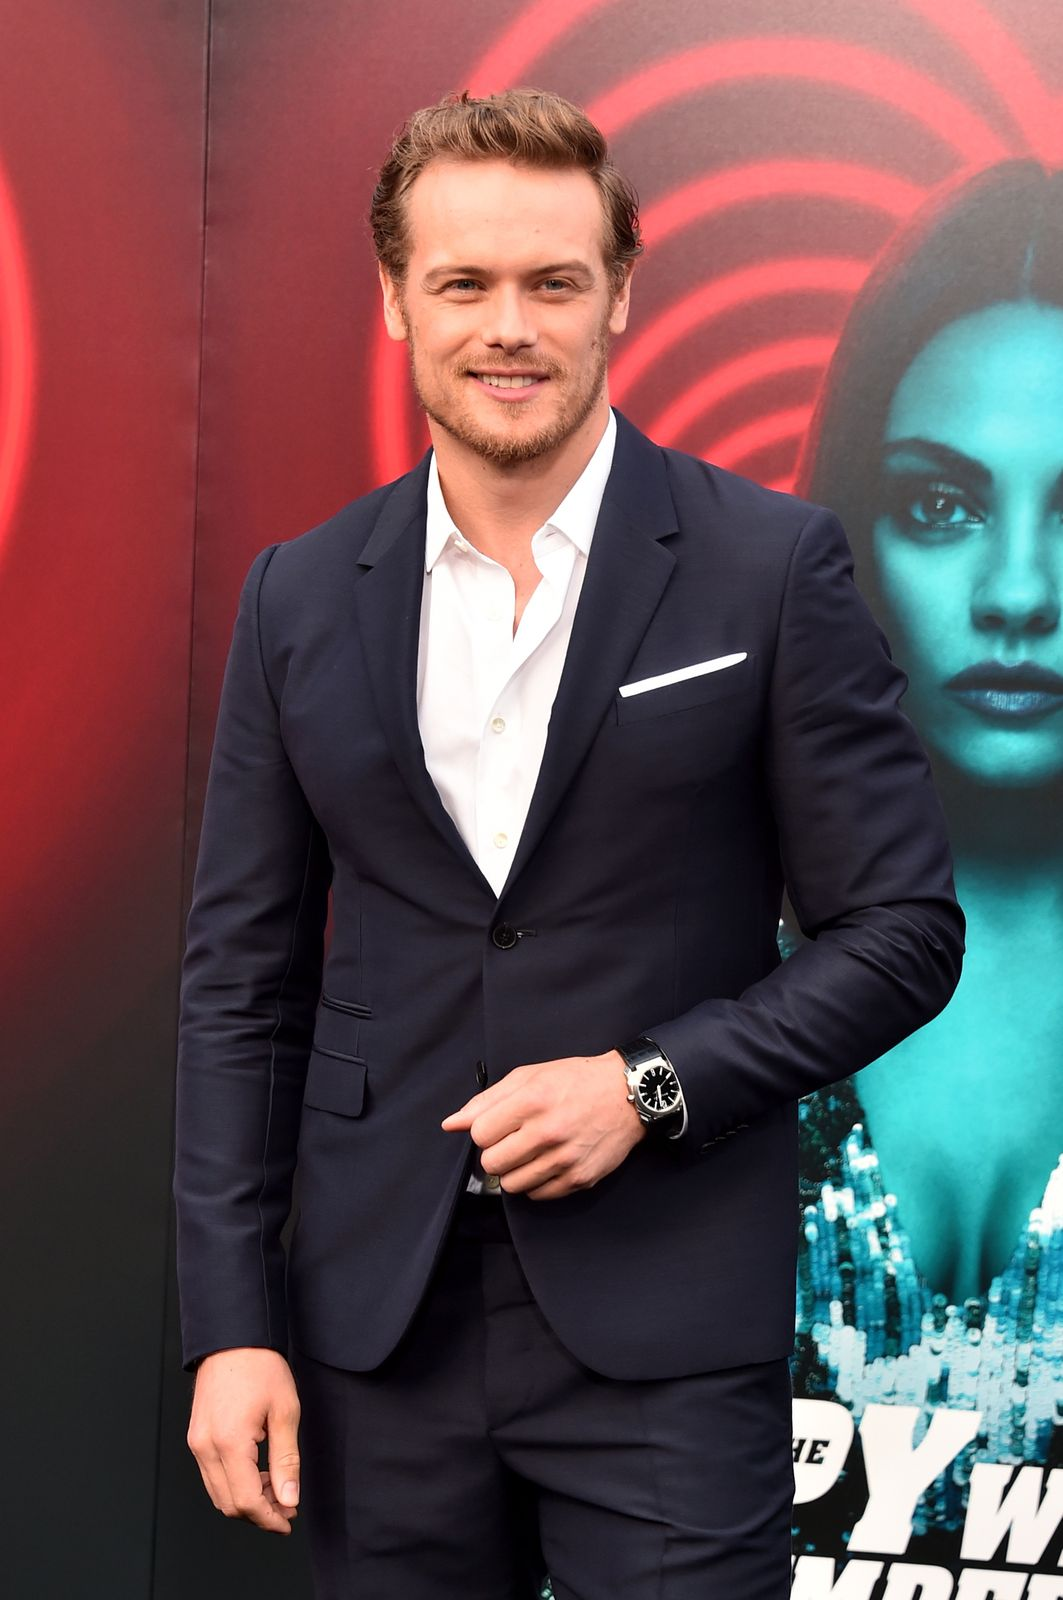 Sam Heughan at a red carpet event/Photo:Getty Images